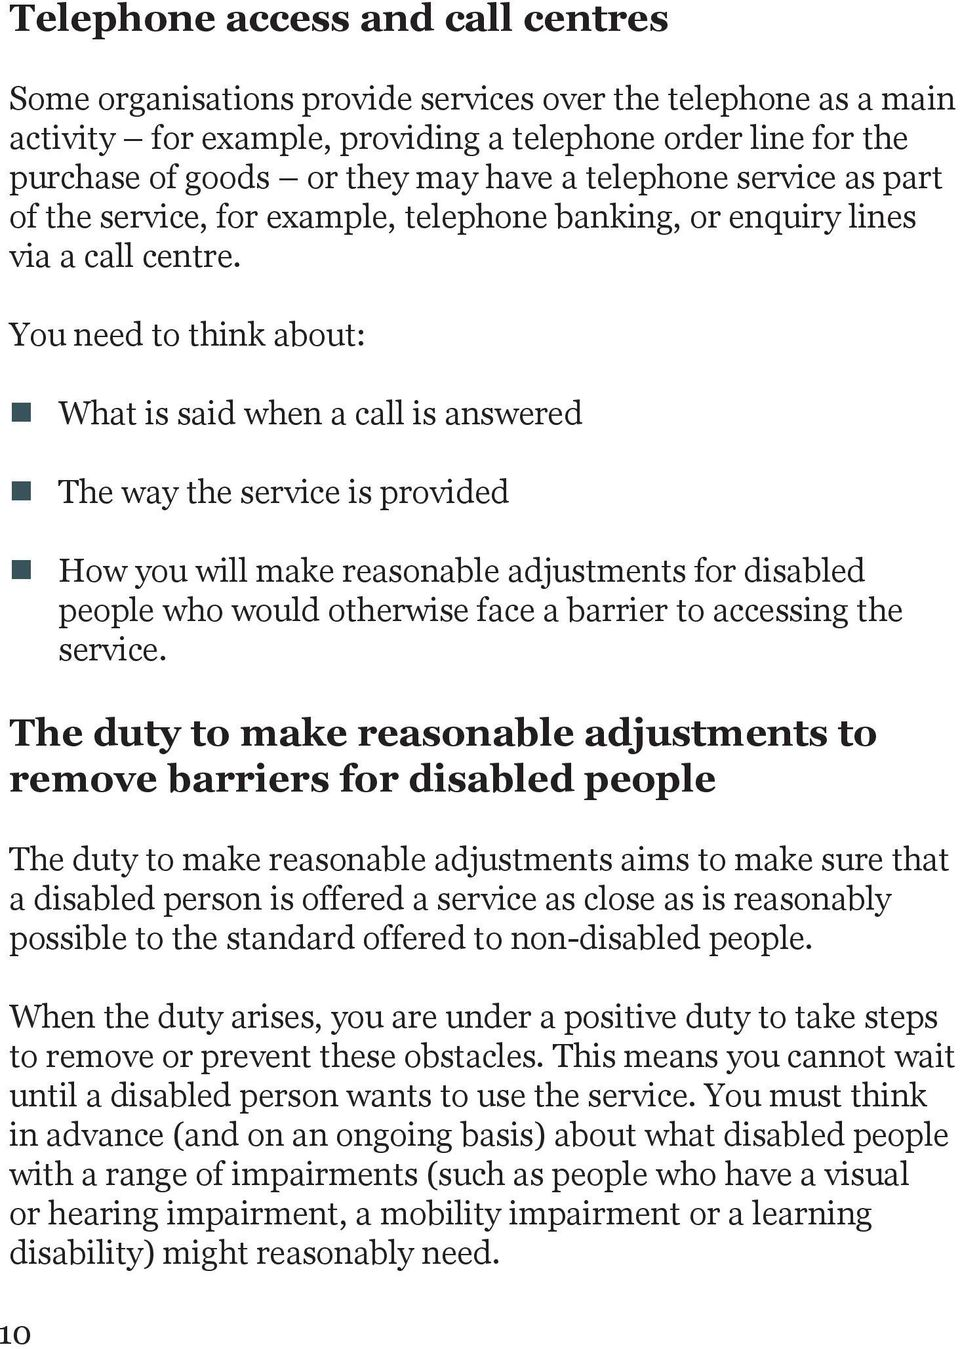 You need to think about: What is said when a call is answered The way the service is provided How you will make reasonable adjustments for disabled people who would otherwise face a barrier to